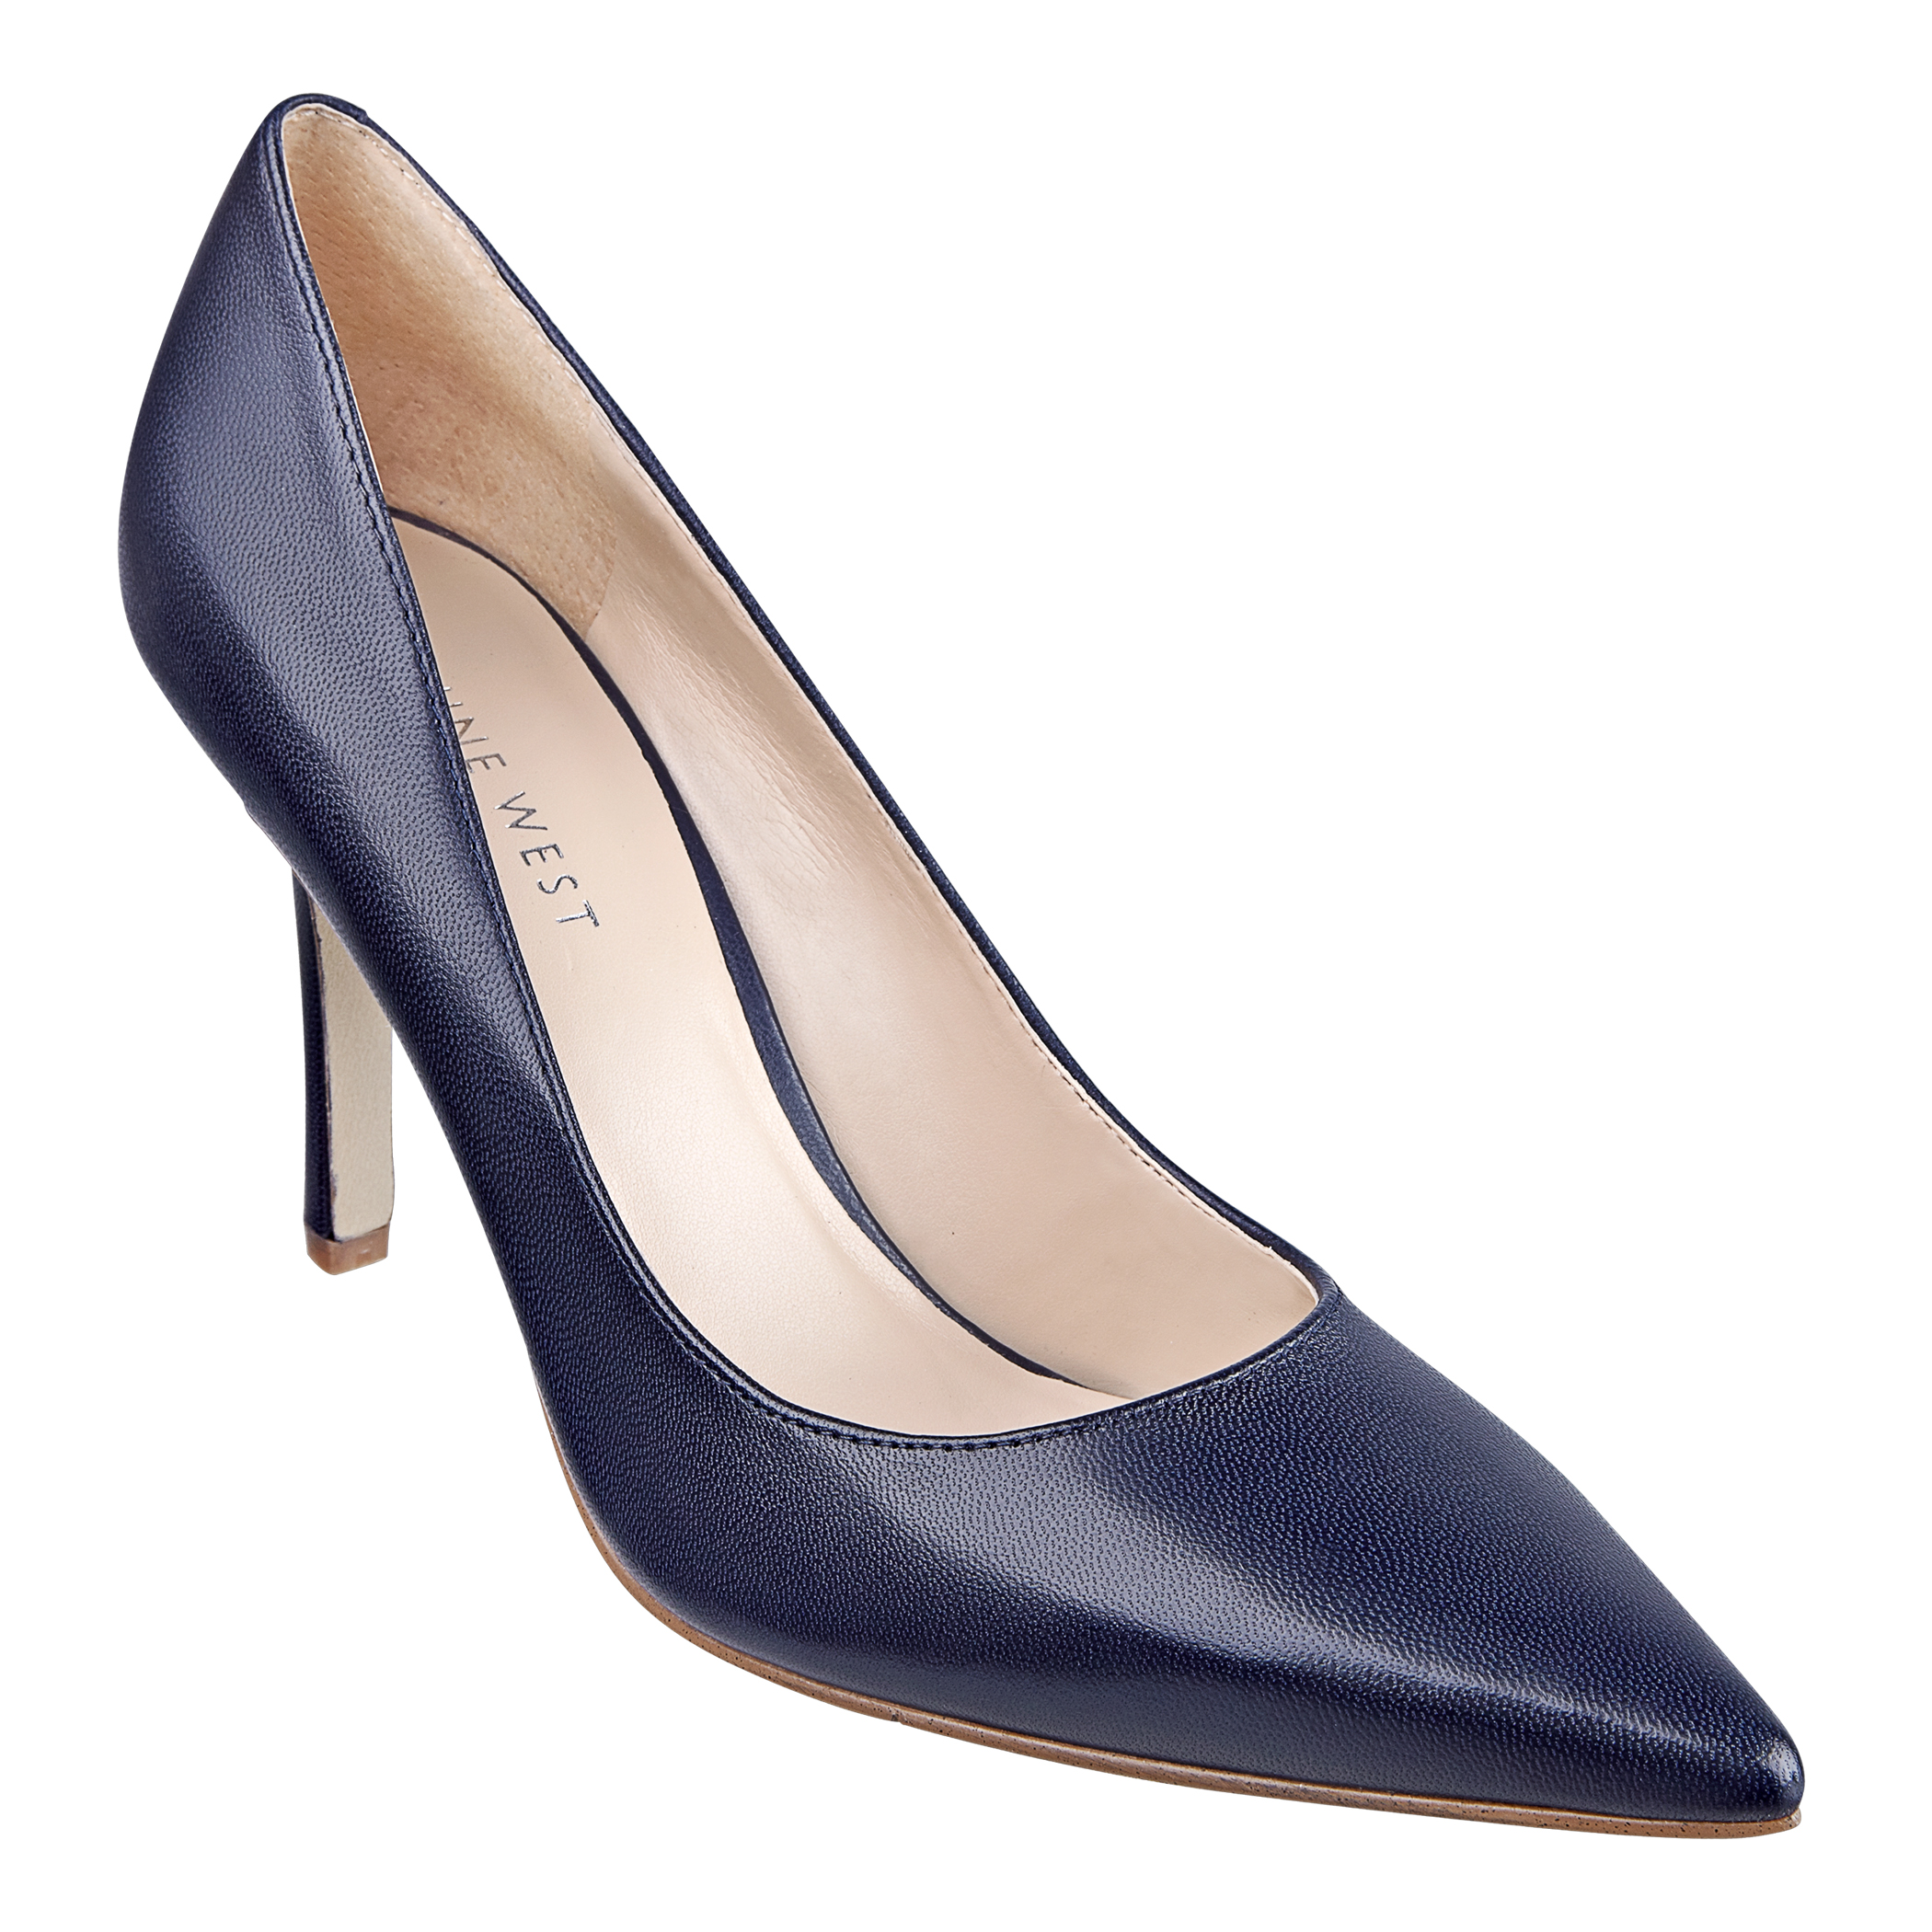 Nine West: Shoes > Pumps > Martina  - pointy toe pump